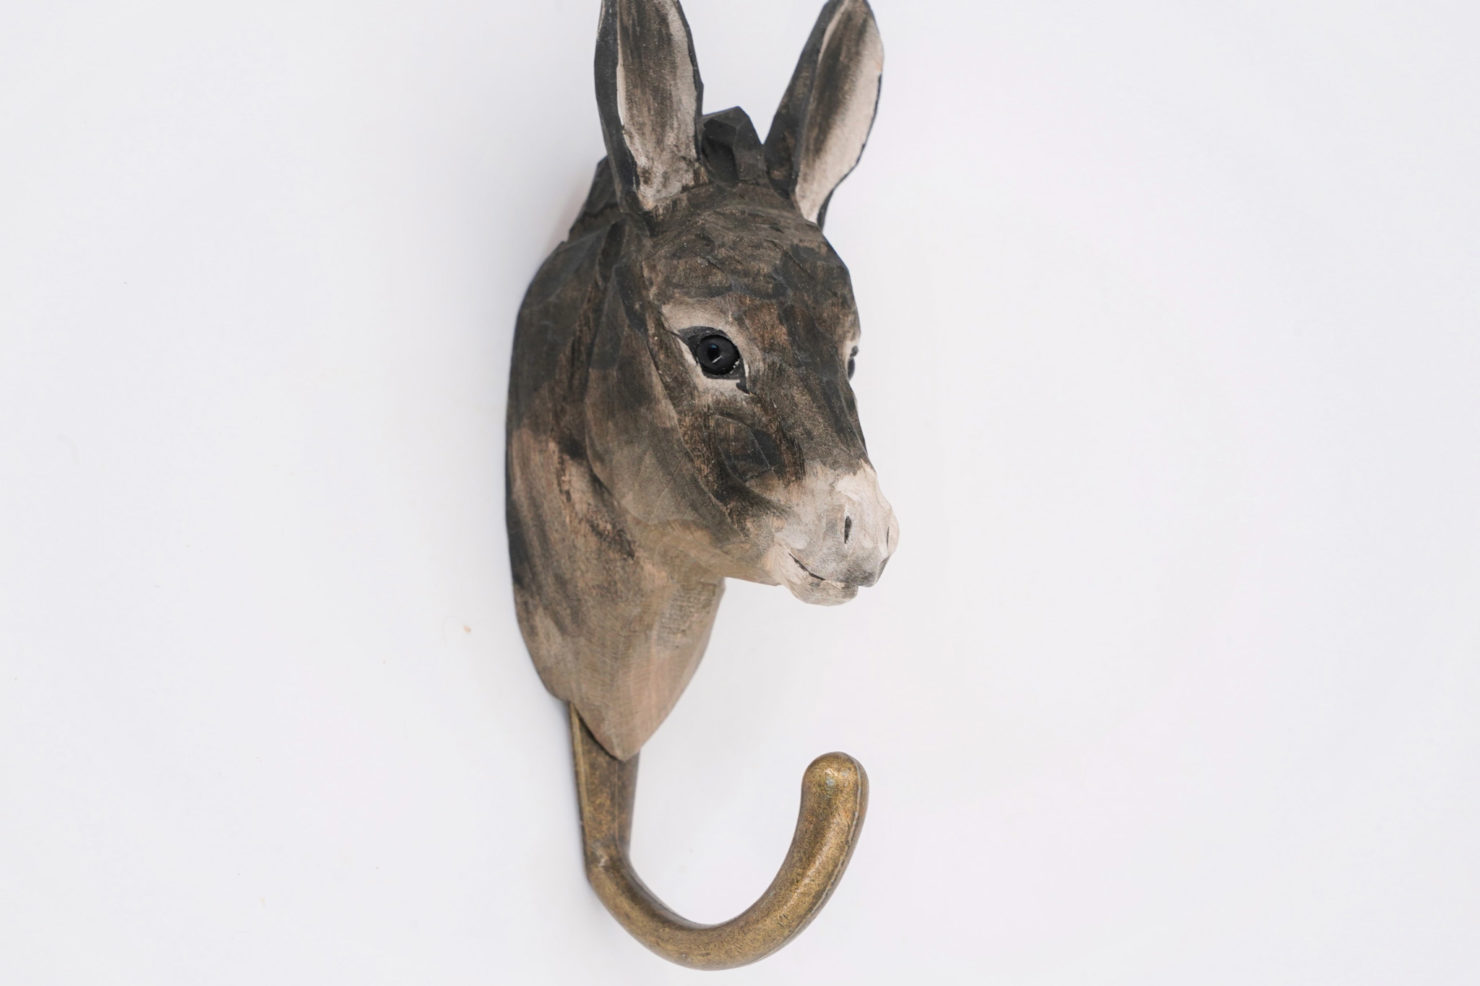 HAMDCARVED HOOK DONKEY - WILDLIFE GARDEN